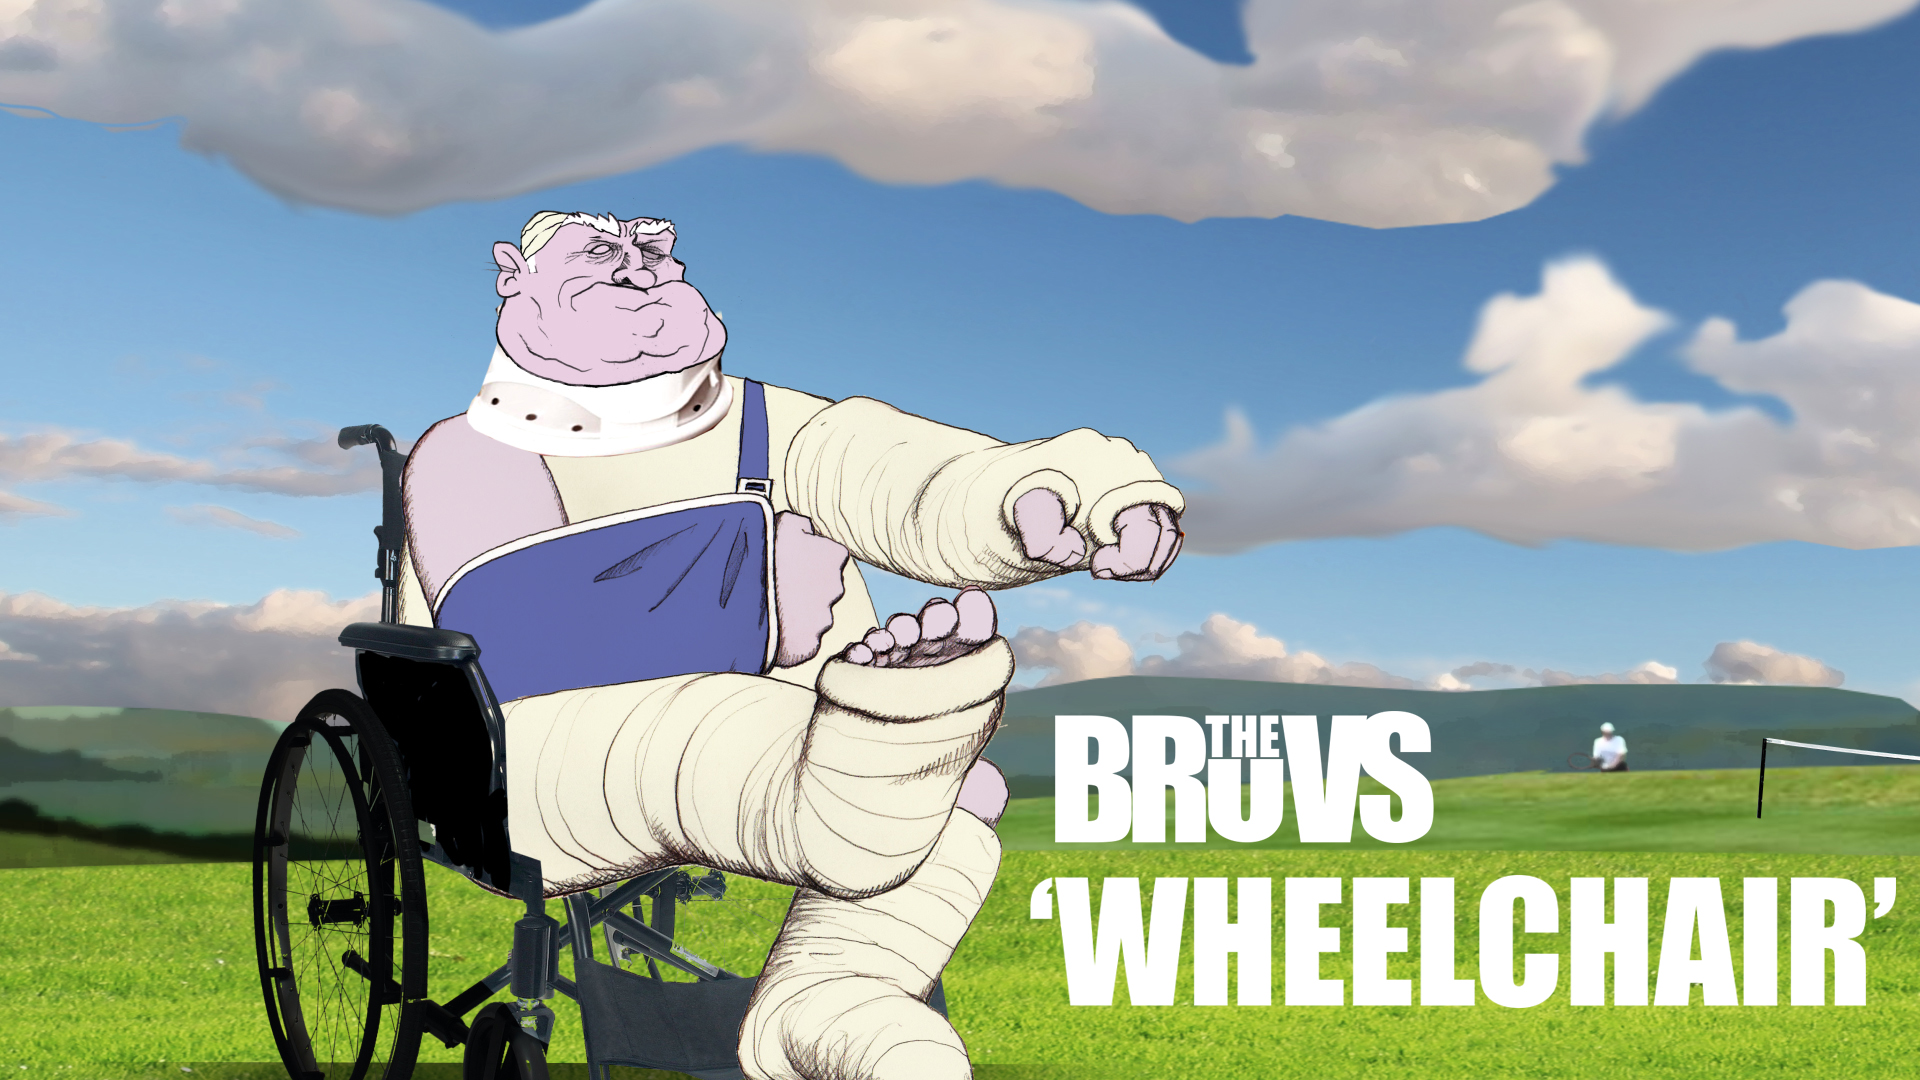 WHEELCHAIR COMING SOON THUMBNAIL (1)